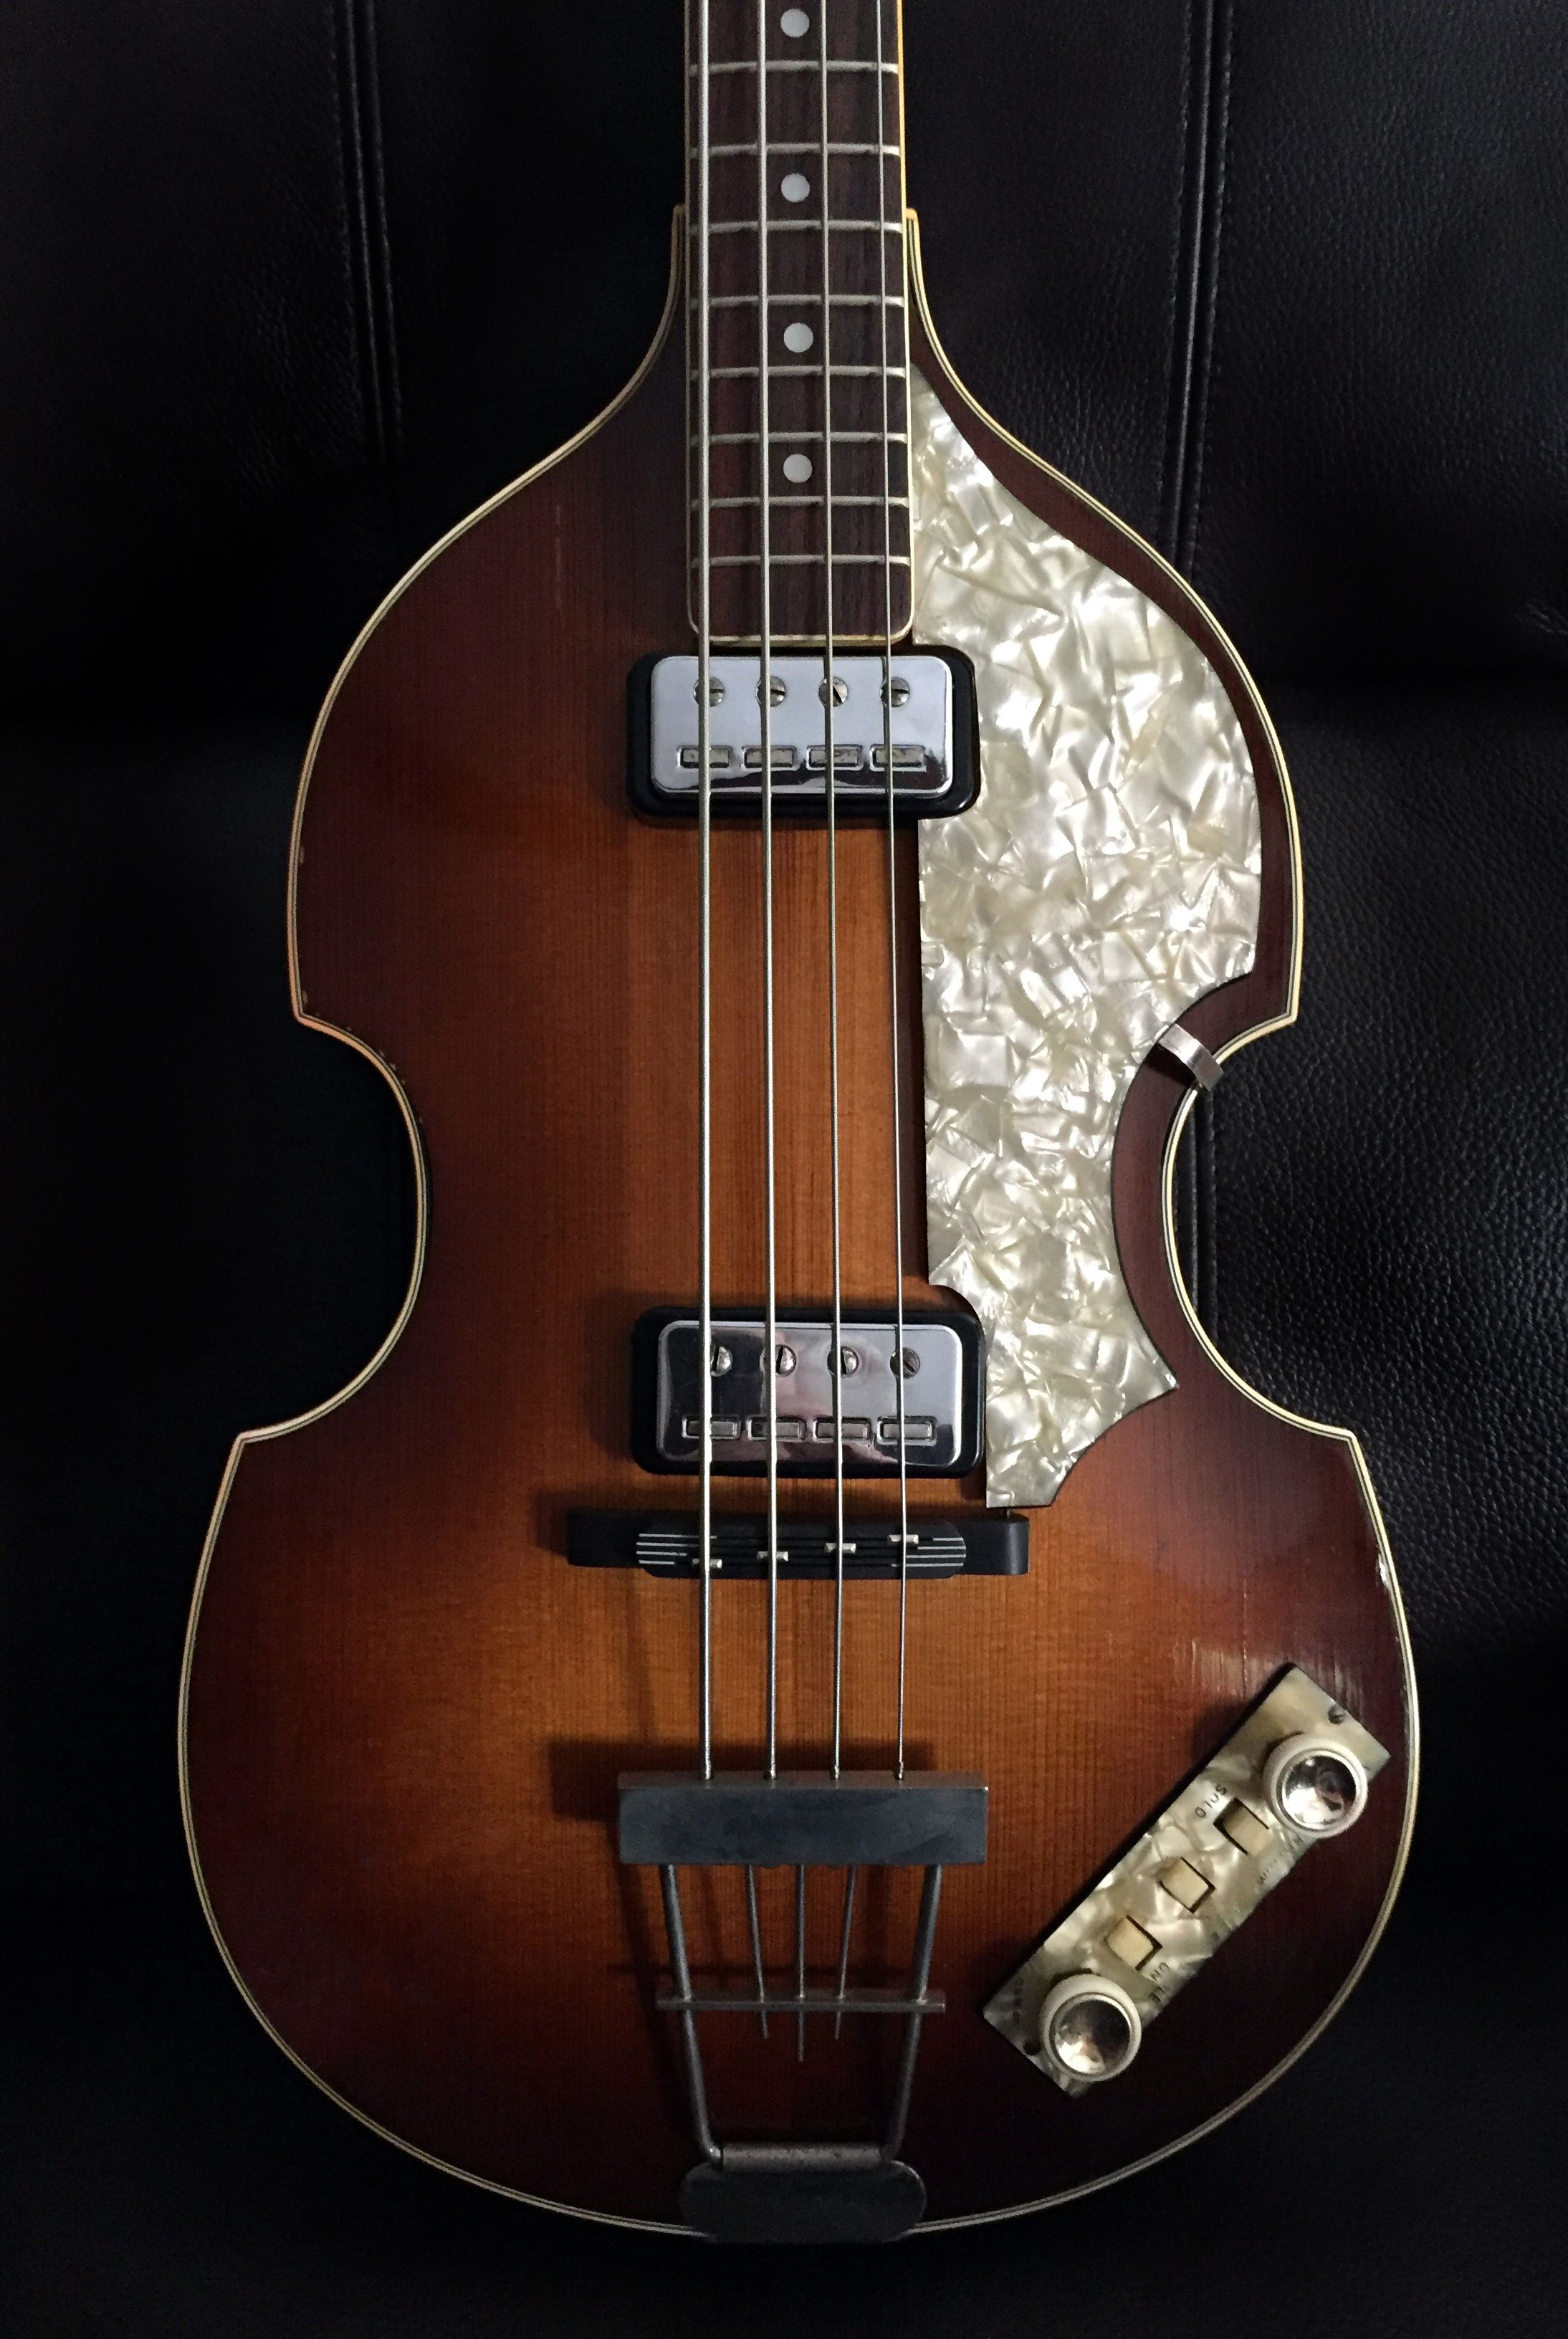 Original 1964 Hofner 500 1 Violin Beatle Bass From Selmer Uk Showing The Arched Spruce Body Front Bass Guitar Guitar Beatles Bass